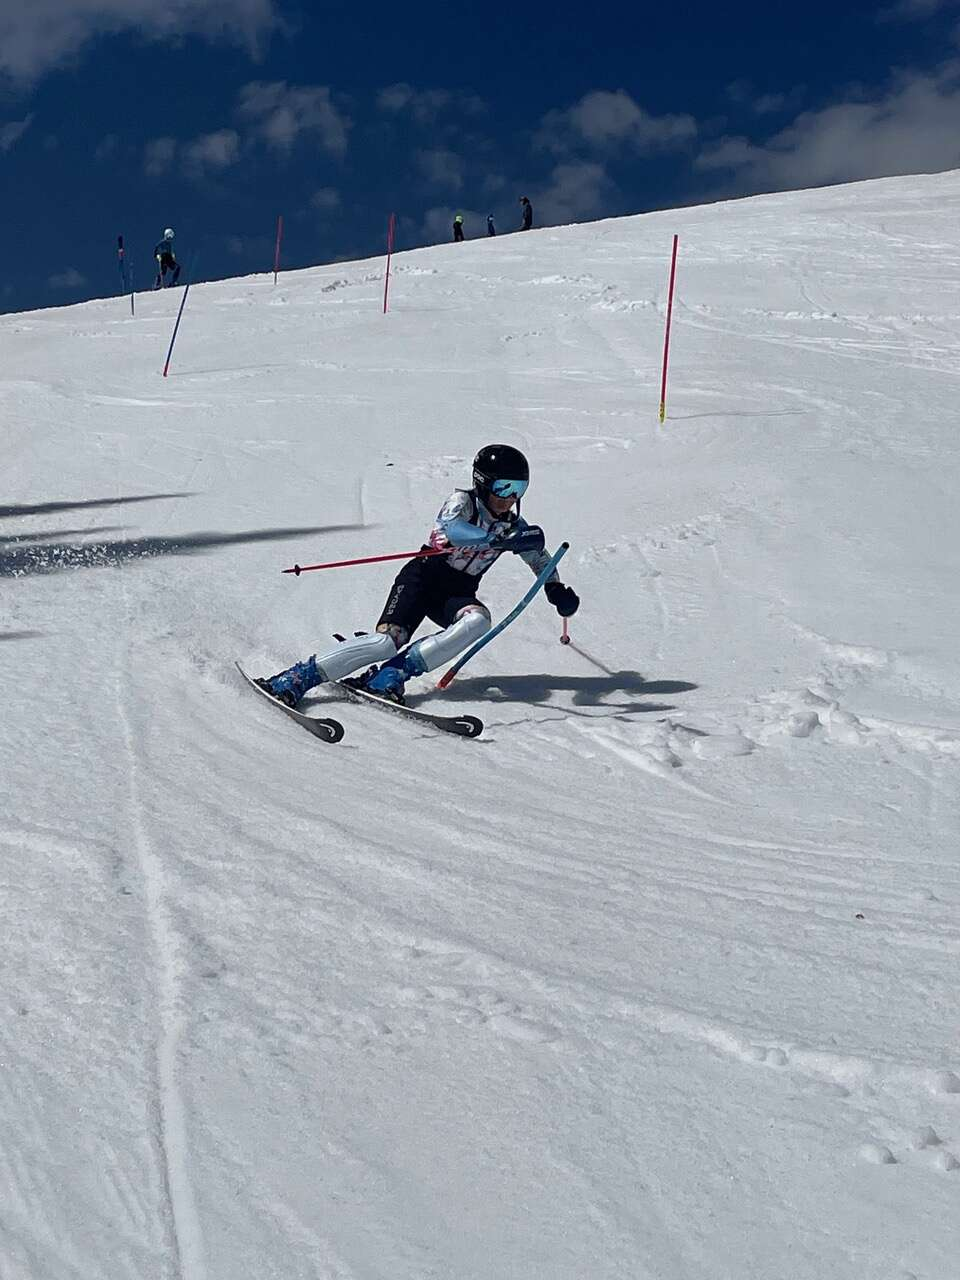 Steamboat Springs Winter Sports Club Alpine skiers at the U14, U16 and FIS levels have been extending winter by training at Copper Mountain. They'll take advantage of the snow until June 16th.